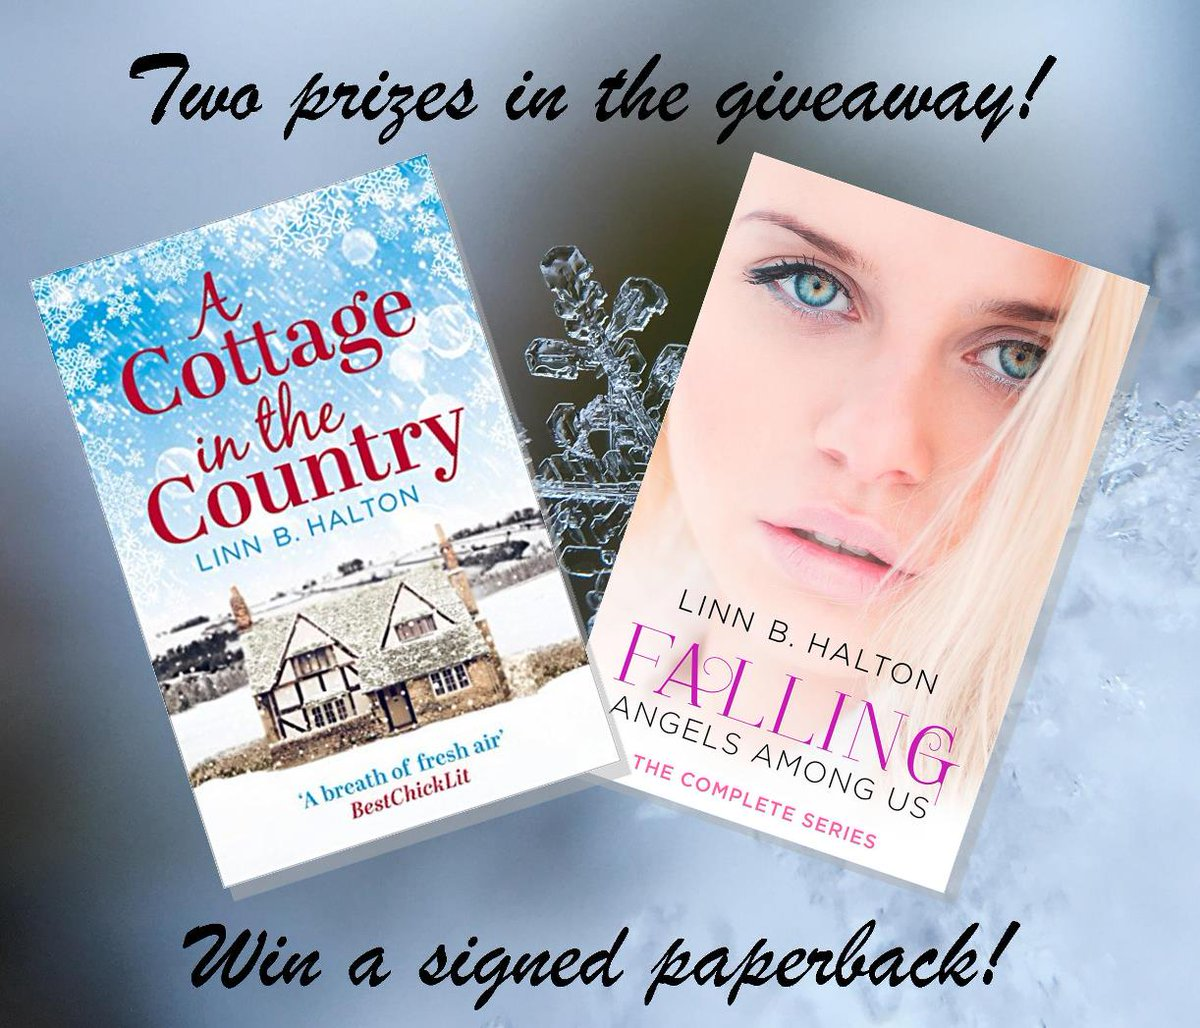 #Review Quintessentially Yours #comp to #win 1 of 2 #signed paperbacks!! @Annieksnowroses https://t.co/zAALIR06wL https://t.co/Ic9MQRM6WB